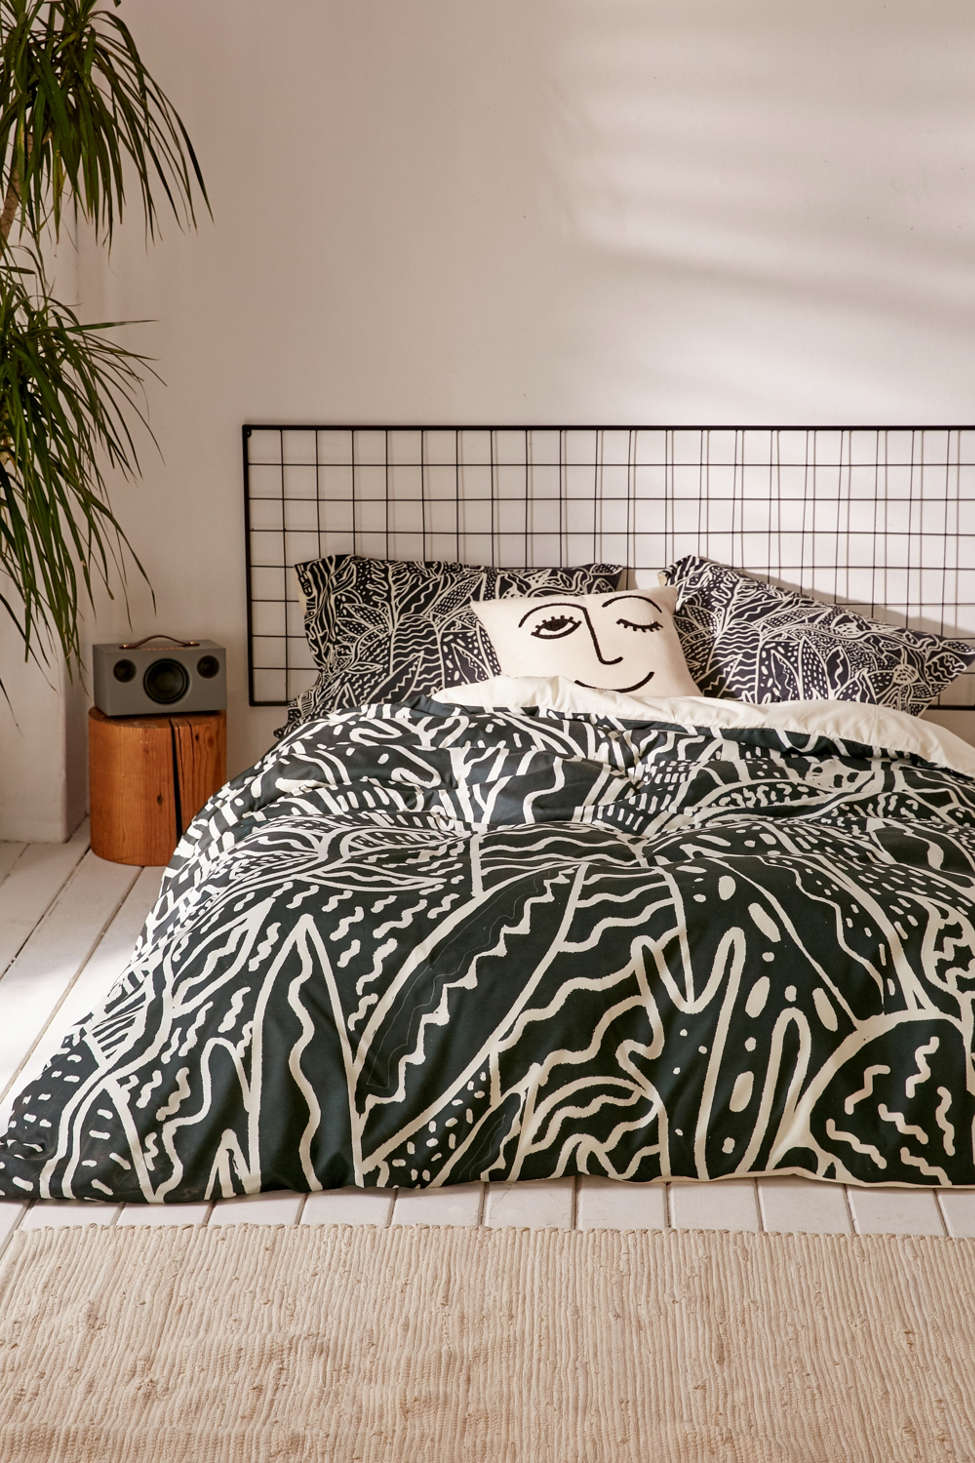 Slide View: 1: Kris Tate For DENY The Garden Duvet Cover